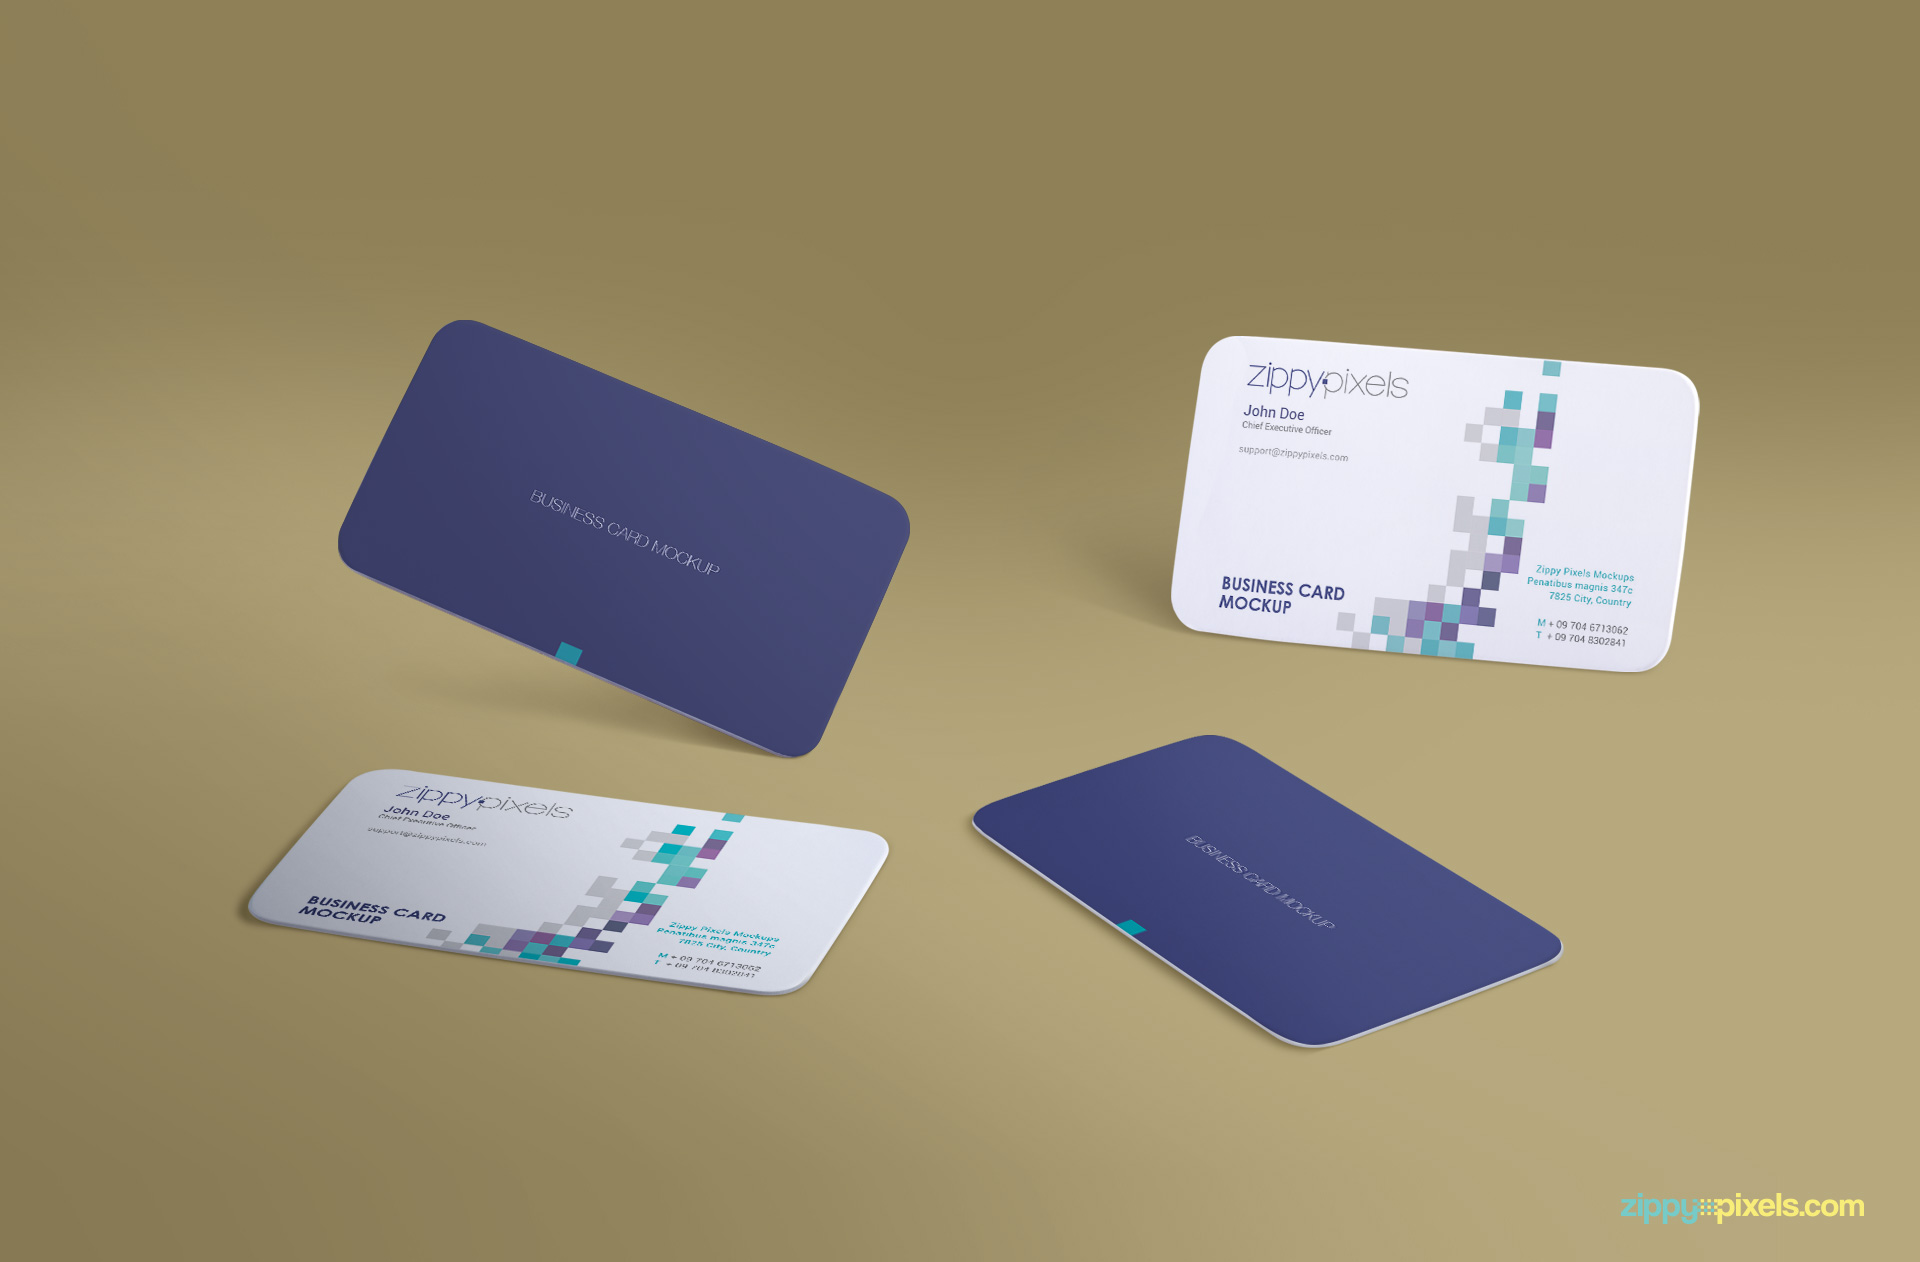 free-gravity-business-card-mockup-floating-surface-realisting-falling-06